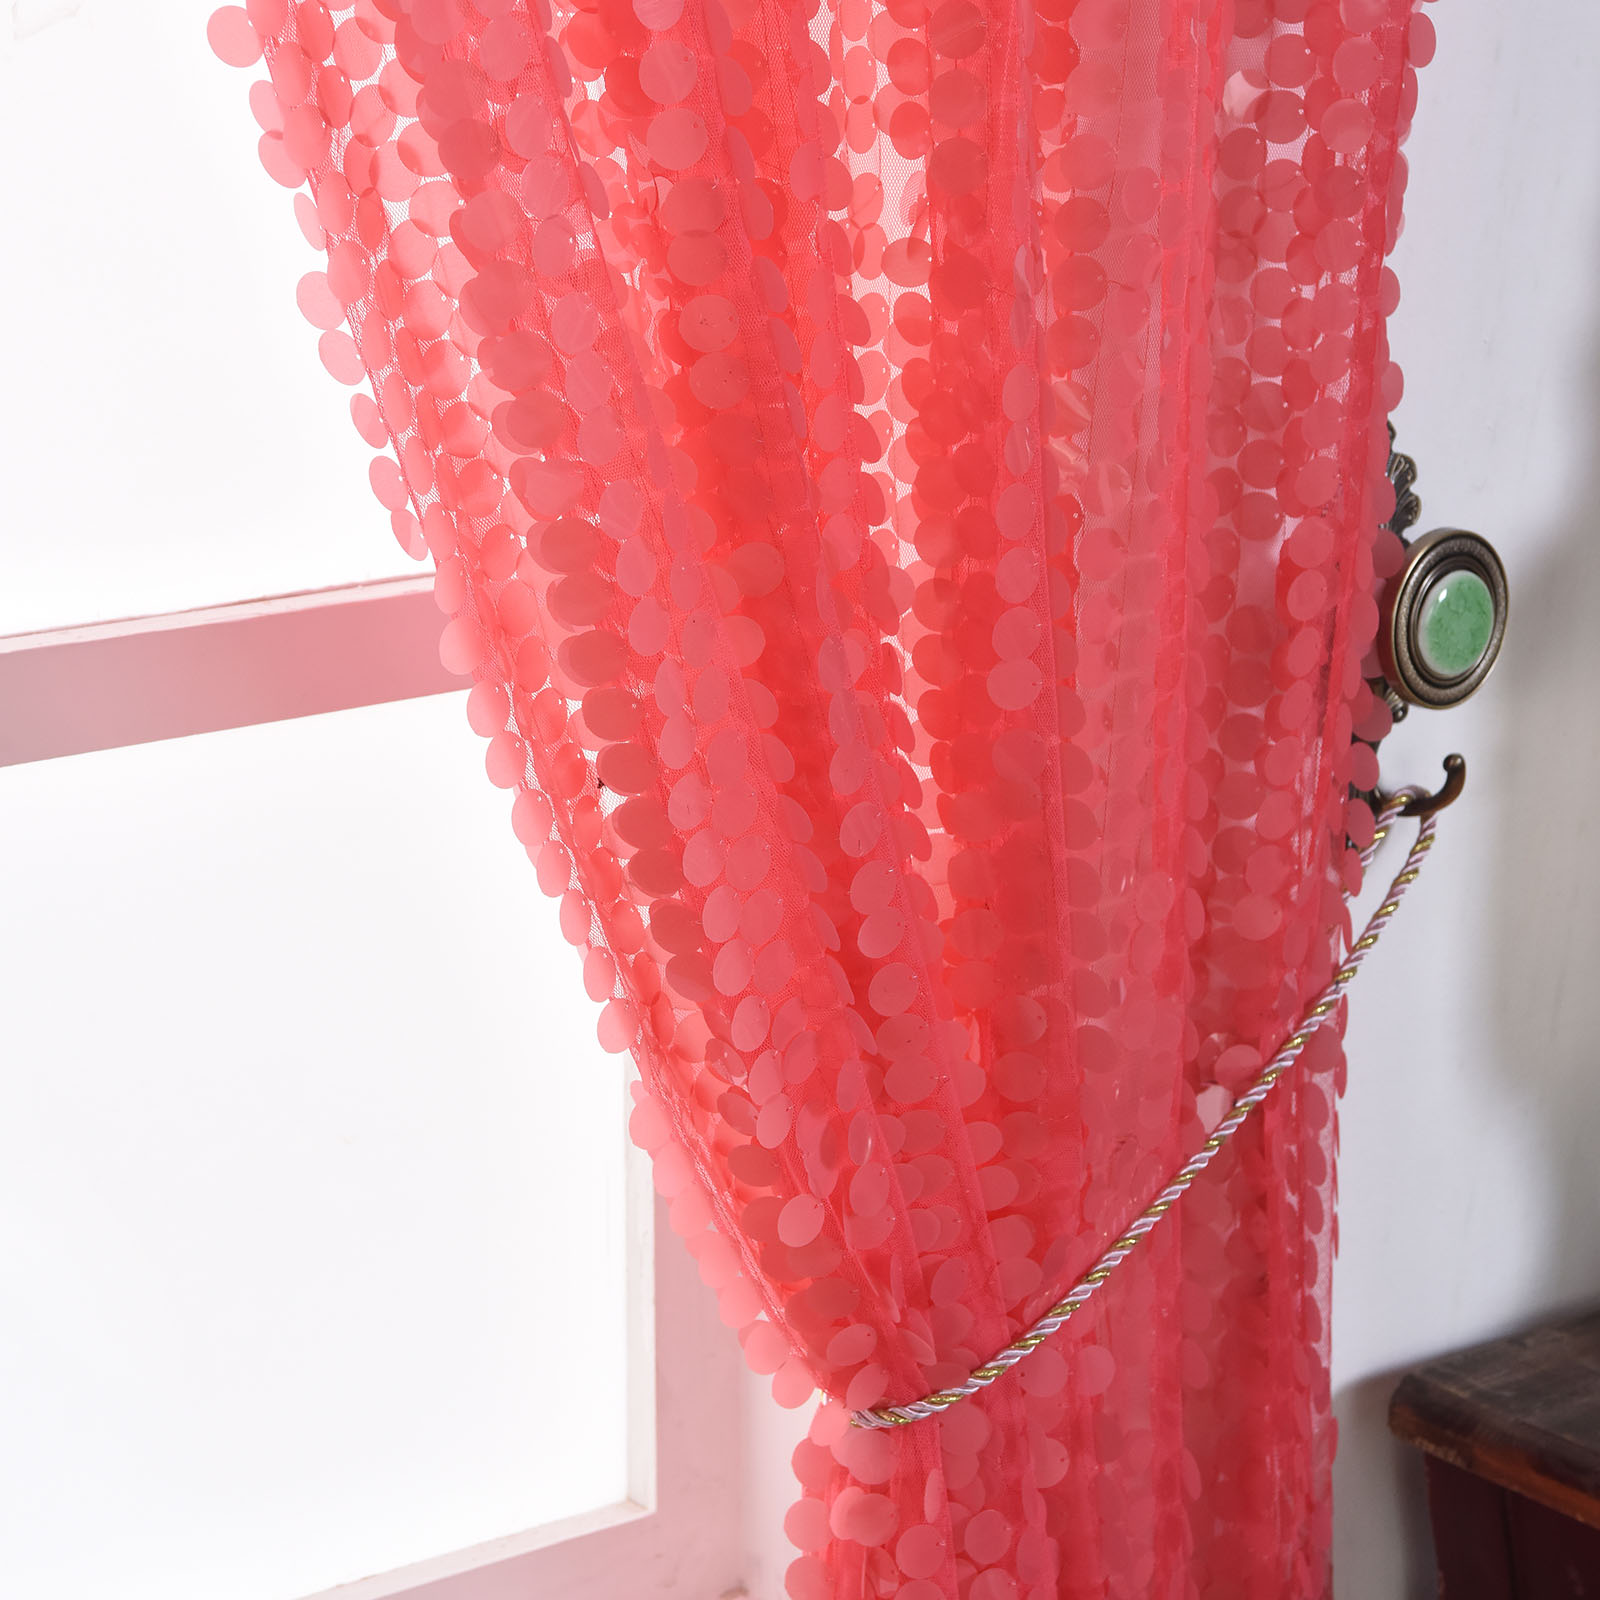 Pink Sequin Curtains Details About Big Payette Sequin 52 X 108 Inch Window Drapes Curtains 2 Panels Home Decor Sale